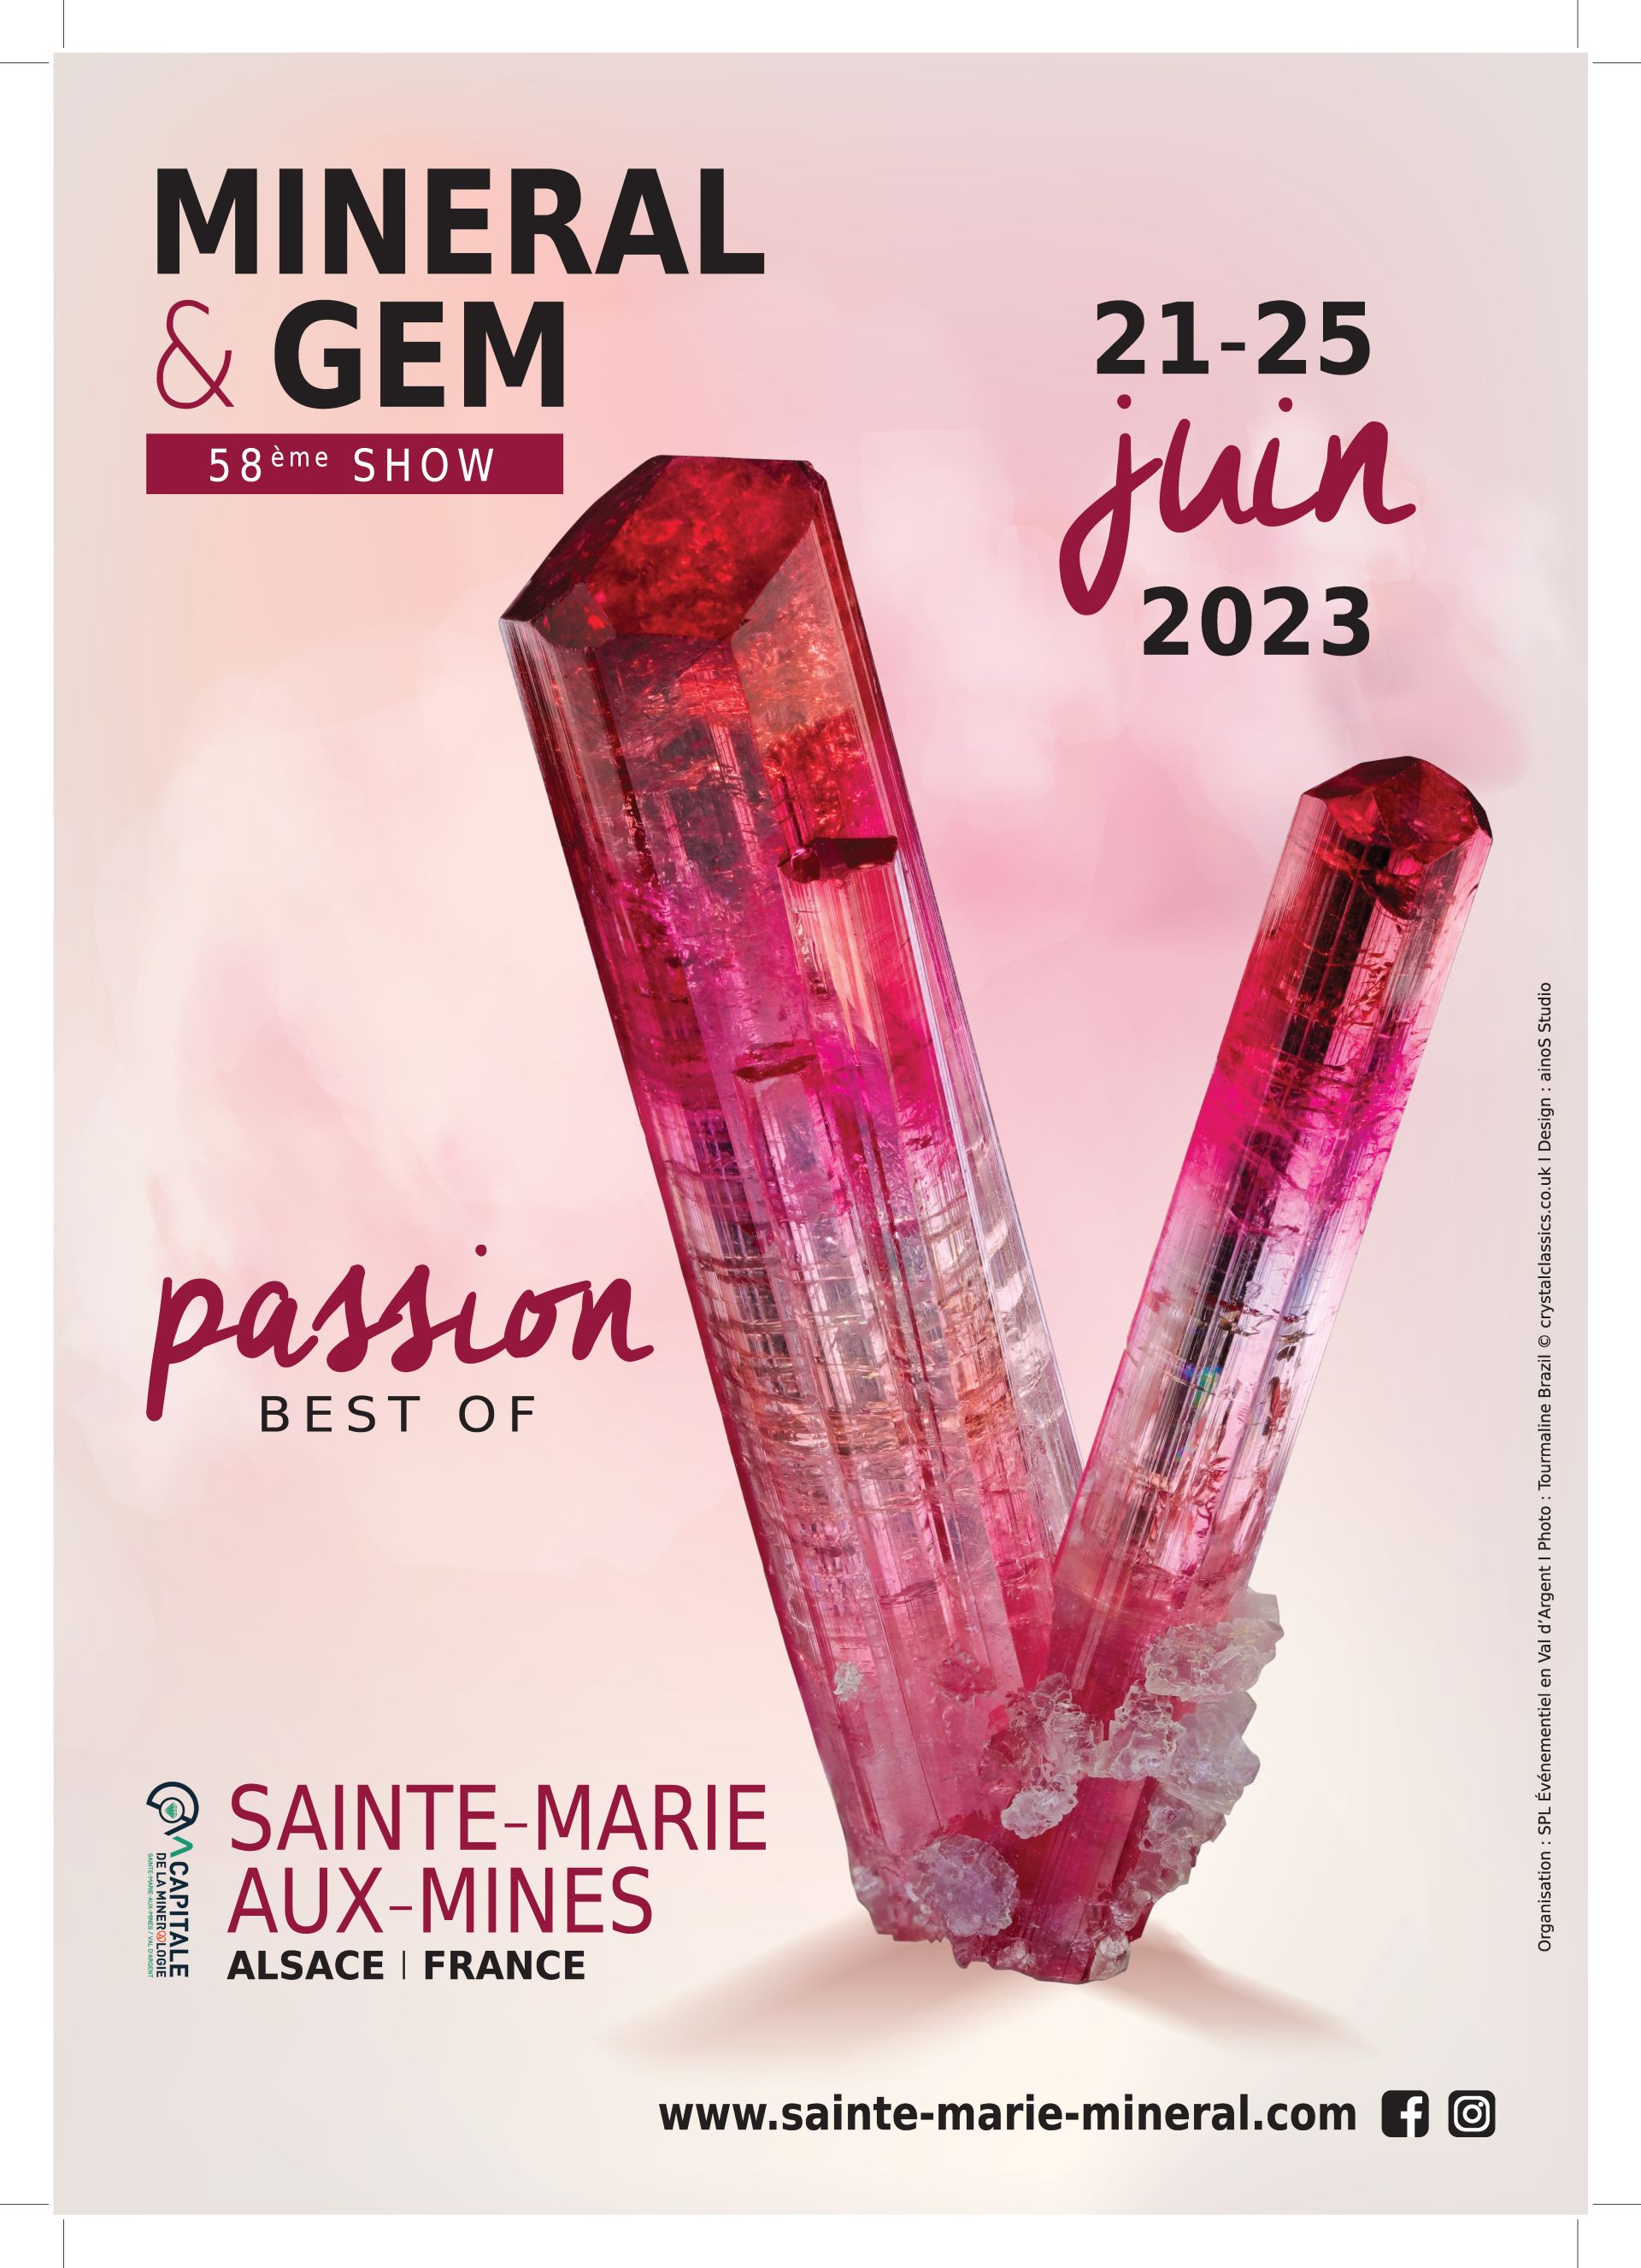 Gem And Mineral Show 2020.International Mineral Gem Show In Sainte Marie Aux Mines